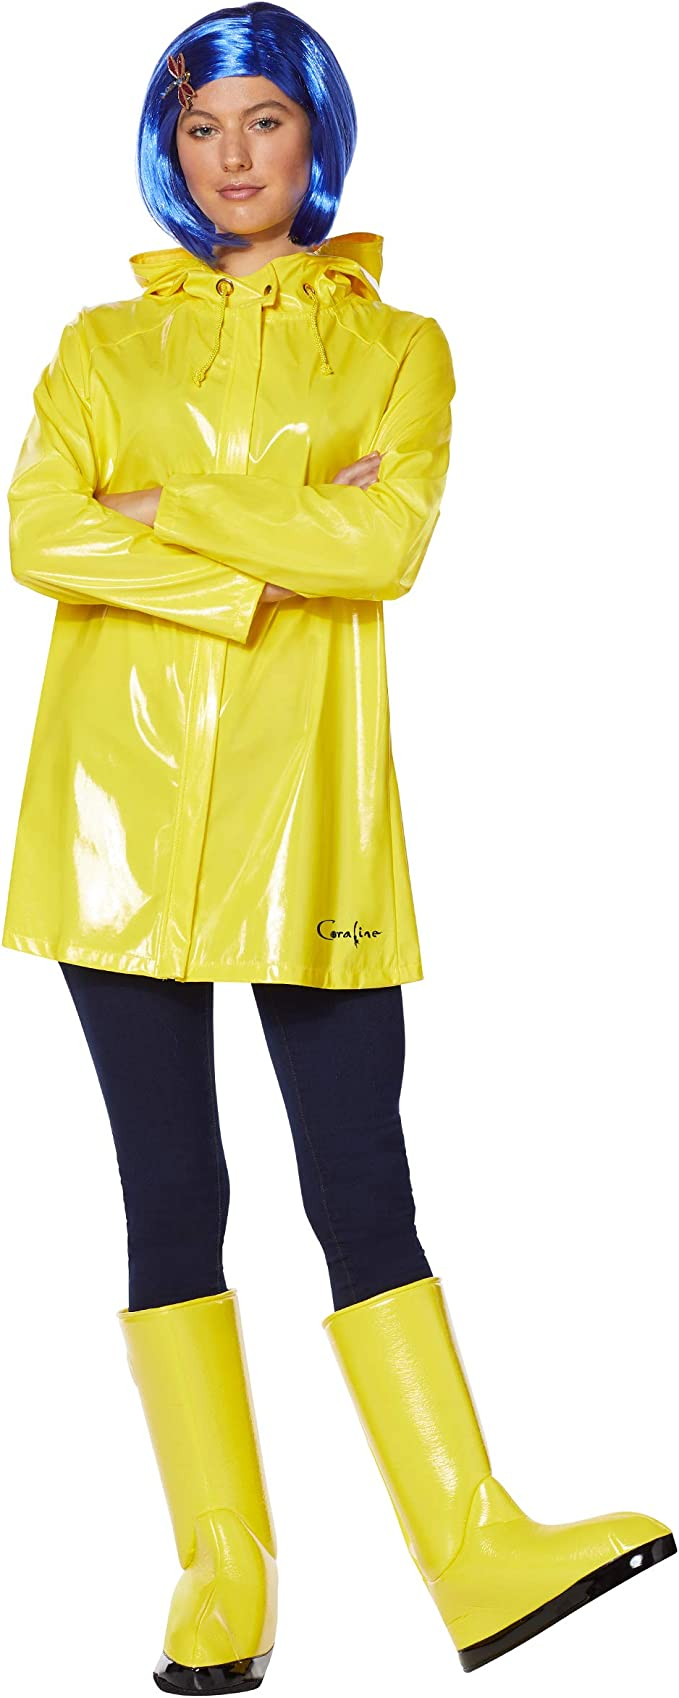 Coraline Costumes for Women